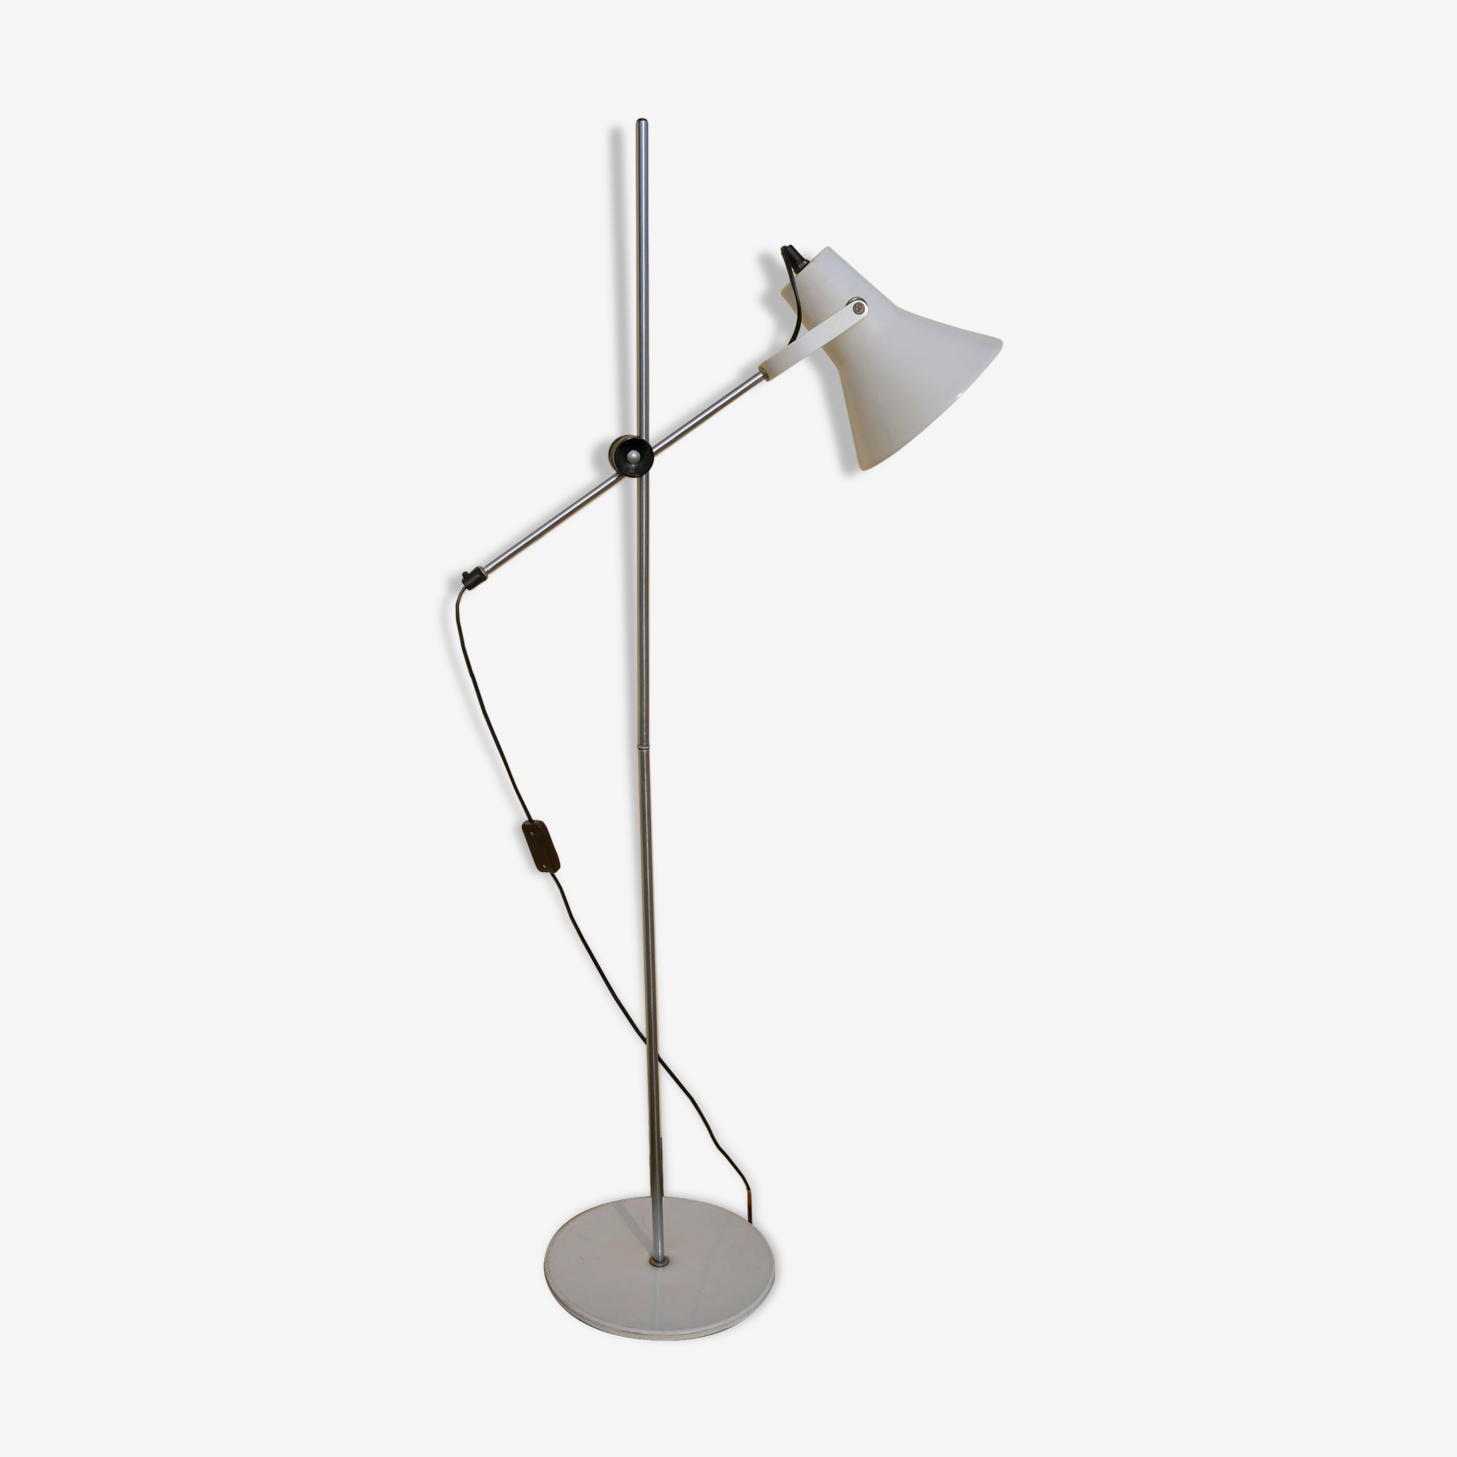 Floor lamp in chrome metal and white, 70 years